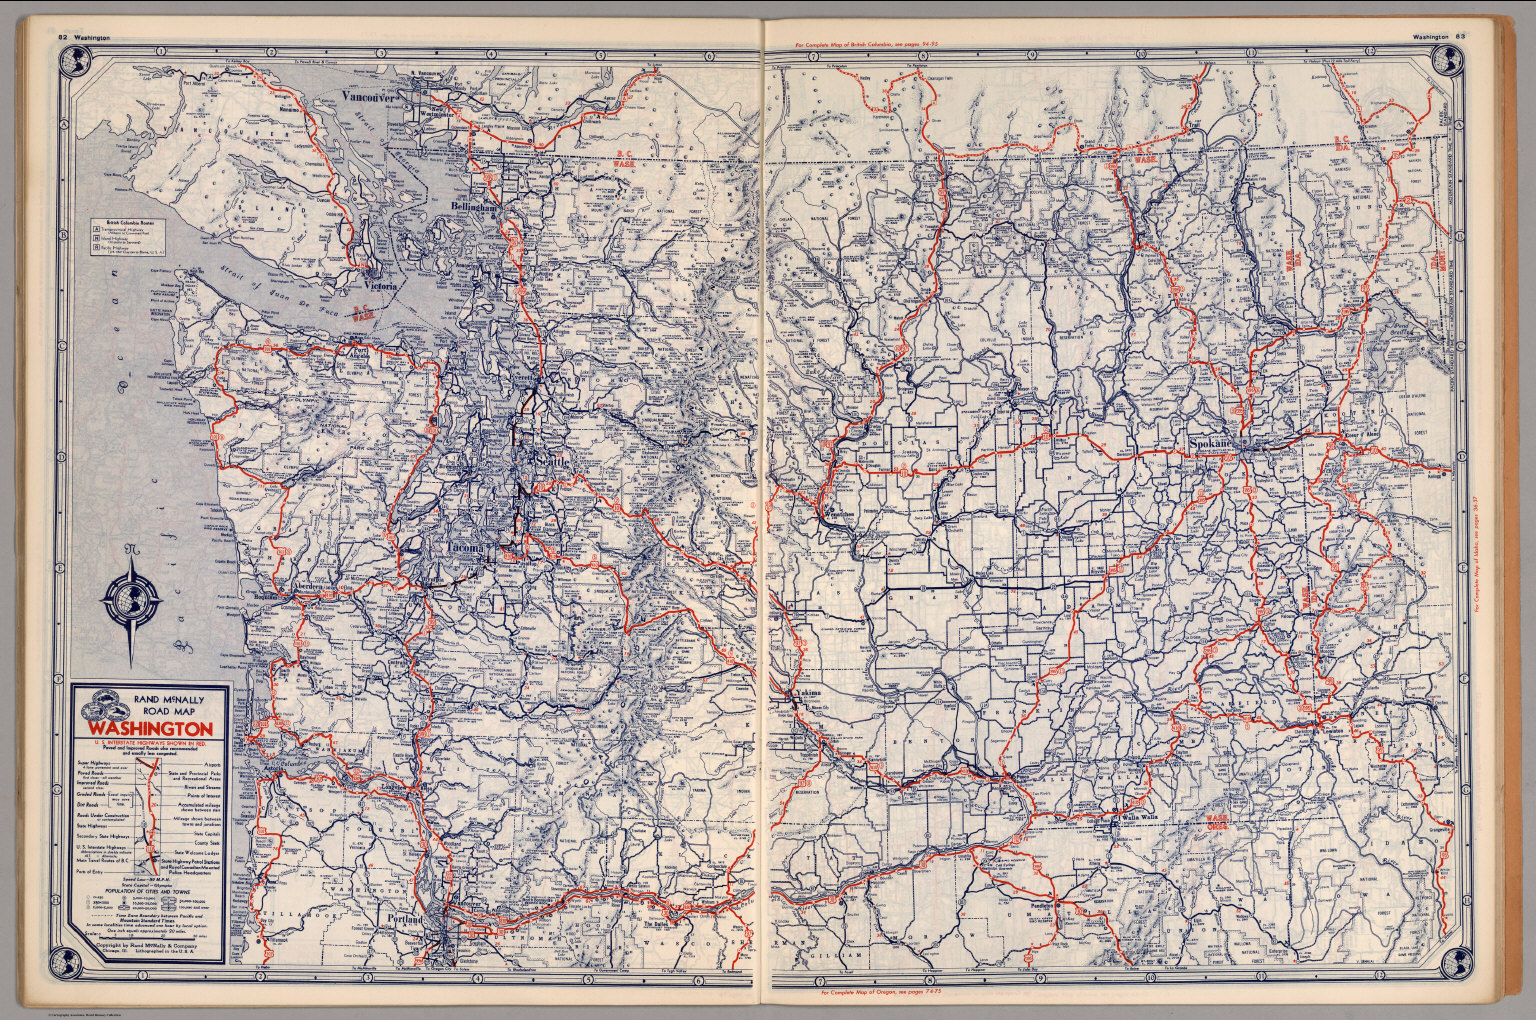 Road map of Washington David Rumsey Historical Map Collection